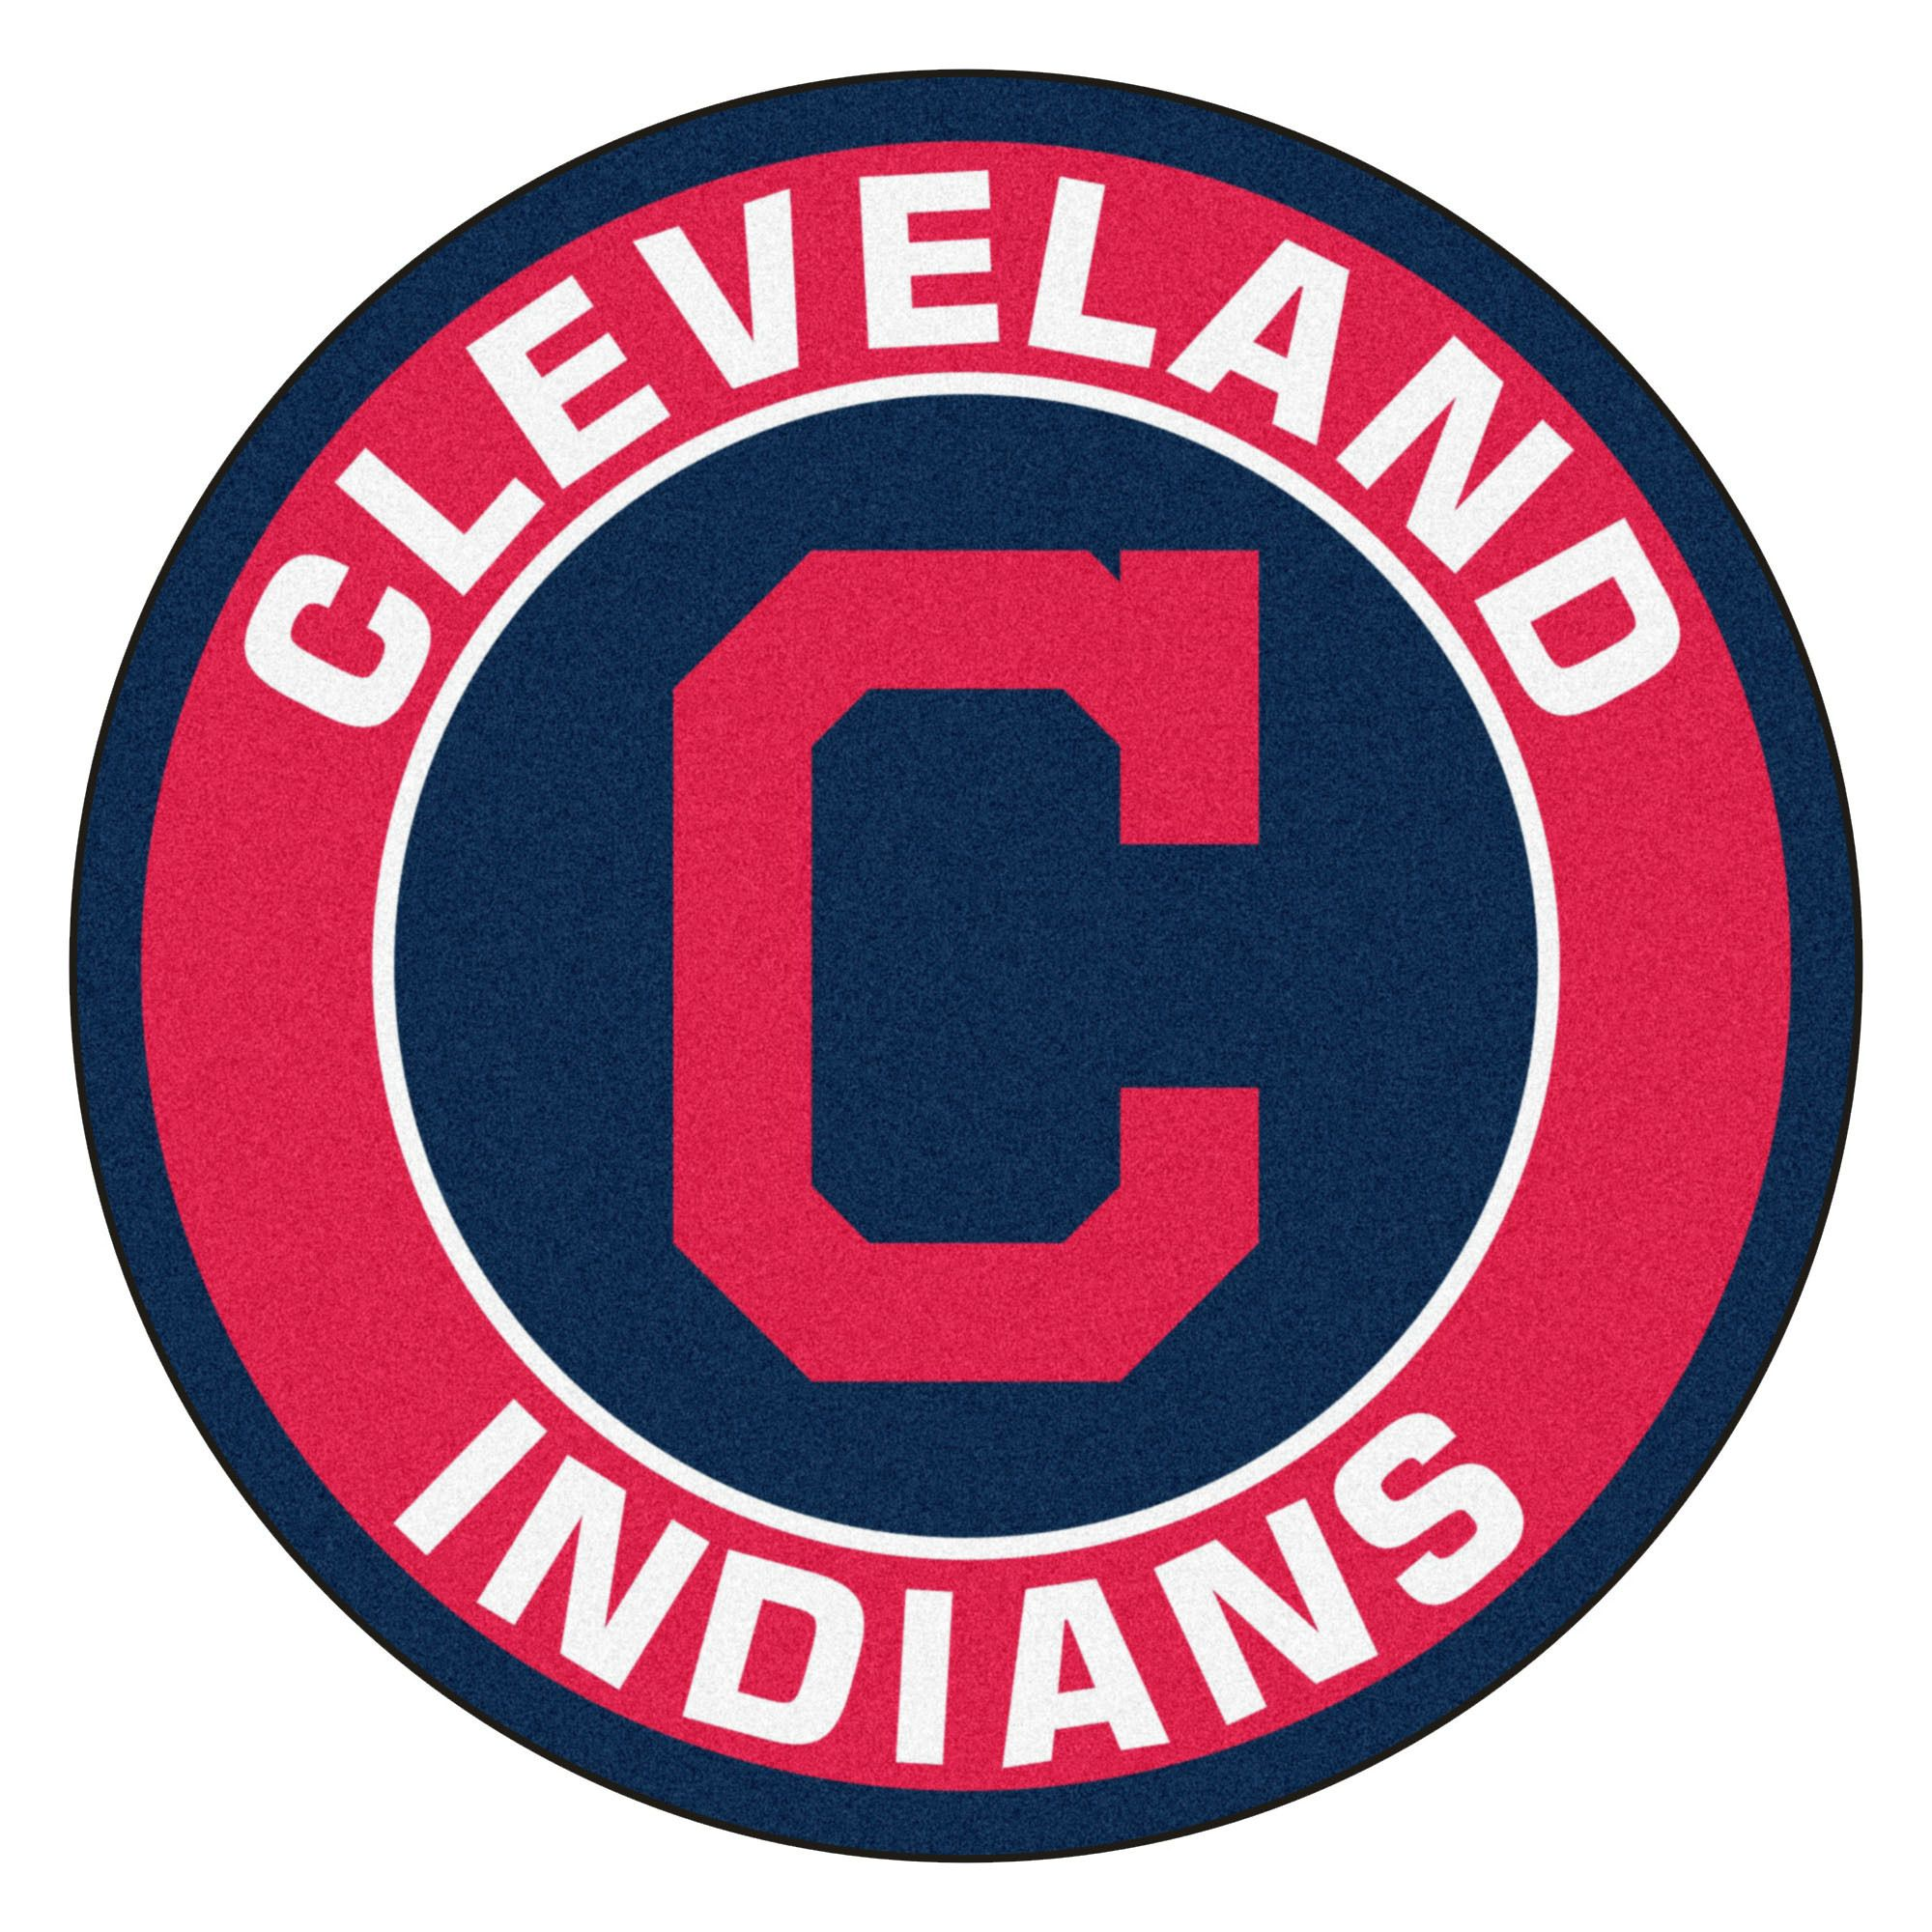 Overstock.com: Online Shopping - Bedding, Furniture, Electronics, Jewelry, Clothing & more | Cleveland indians logo, Cleveland indians, Indians baseball